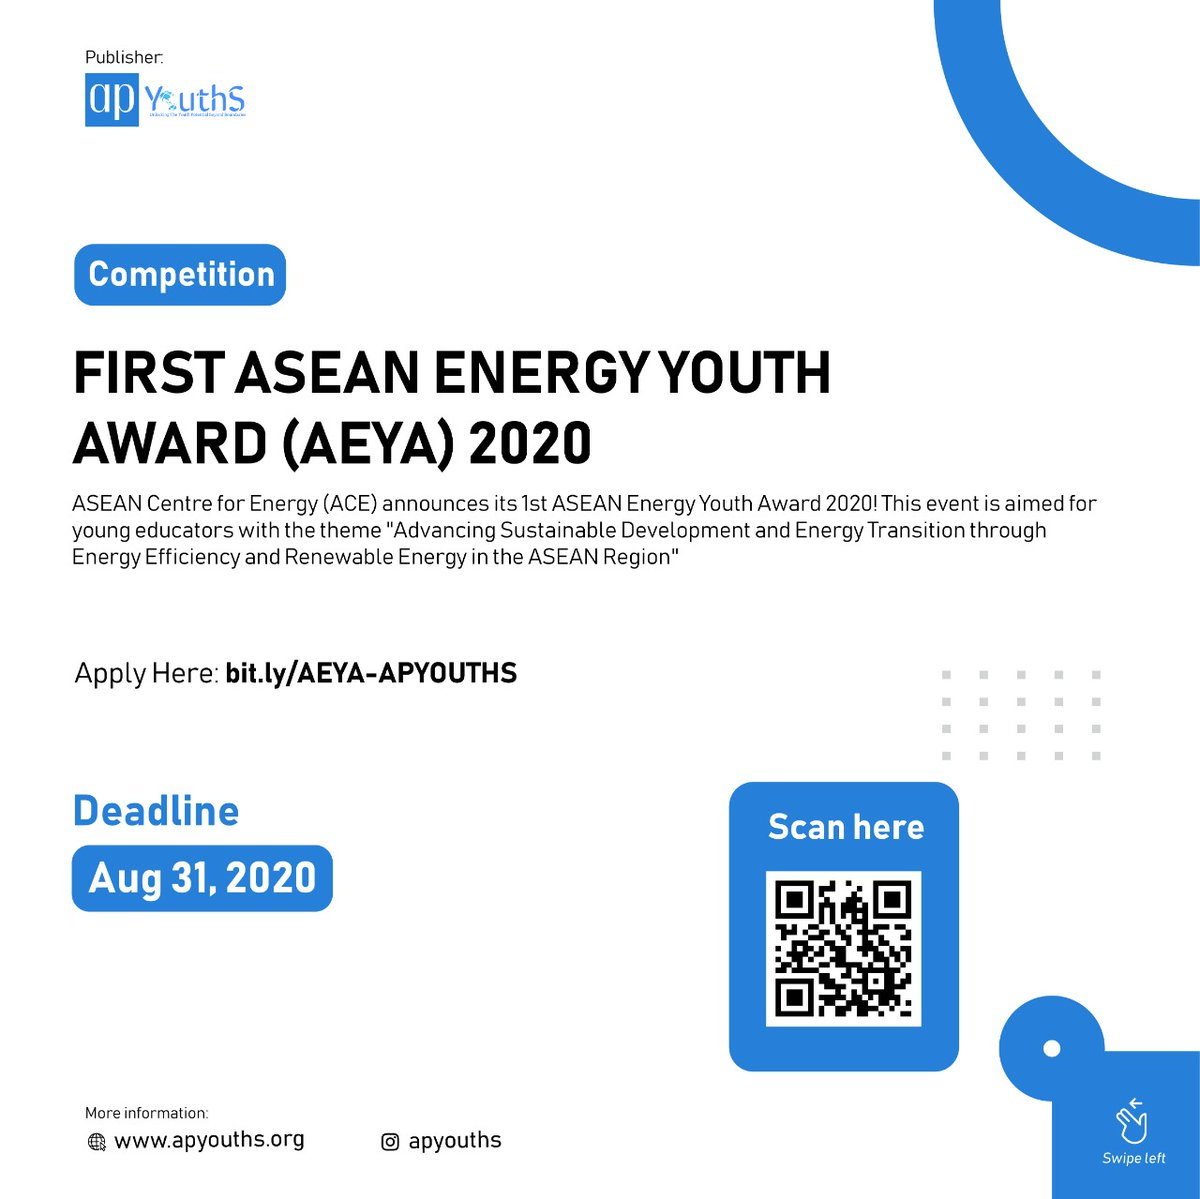 [Competition] FIRST ASEAN ENERGY YOUTH AWARD 2020 Deadline: 31 August 2020  For the complete guideline, you can visit the following link https://t.co/r5Cjg7hxqQ  Published by @ apyouths.secretariat Credited to @aseanfoundation #ASEANEnergy #aeya2020 #WeAreASEAN #asiapacific https://t.co/lwIzoJ12Sy